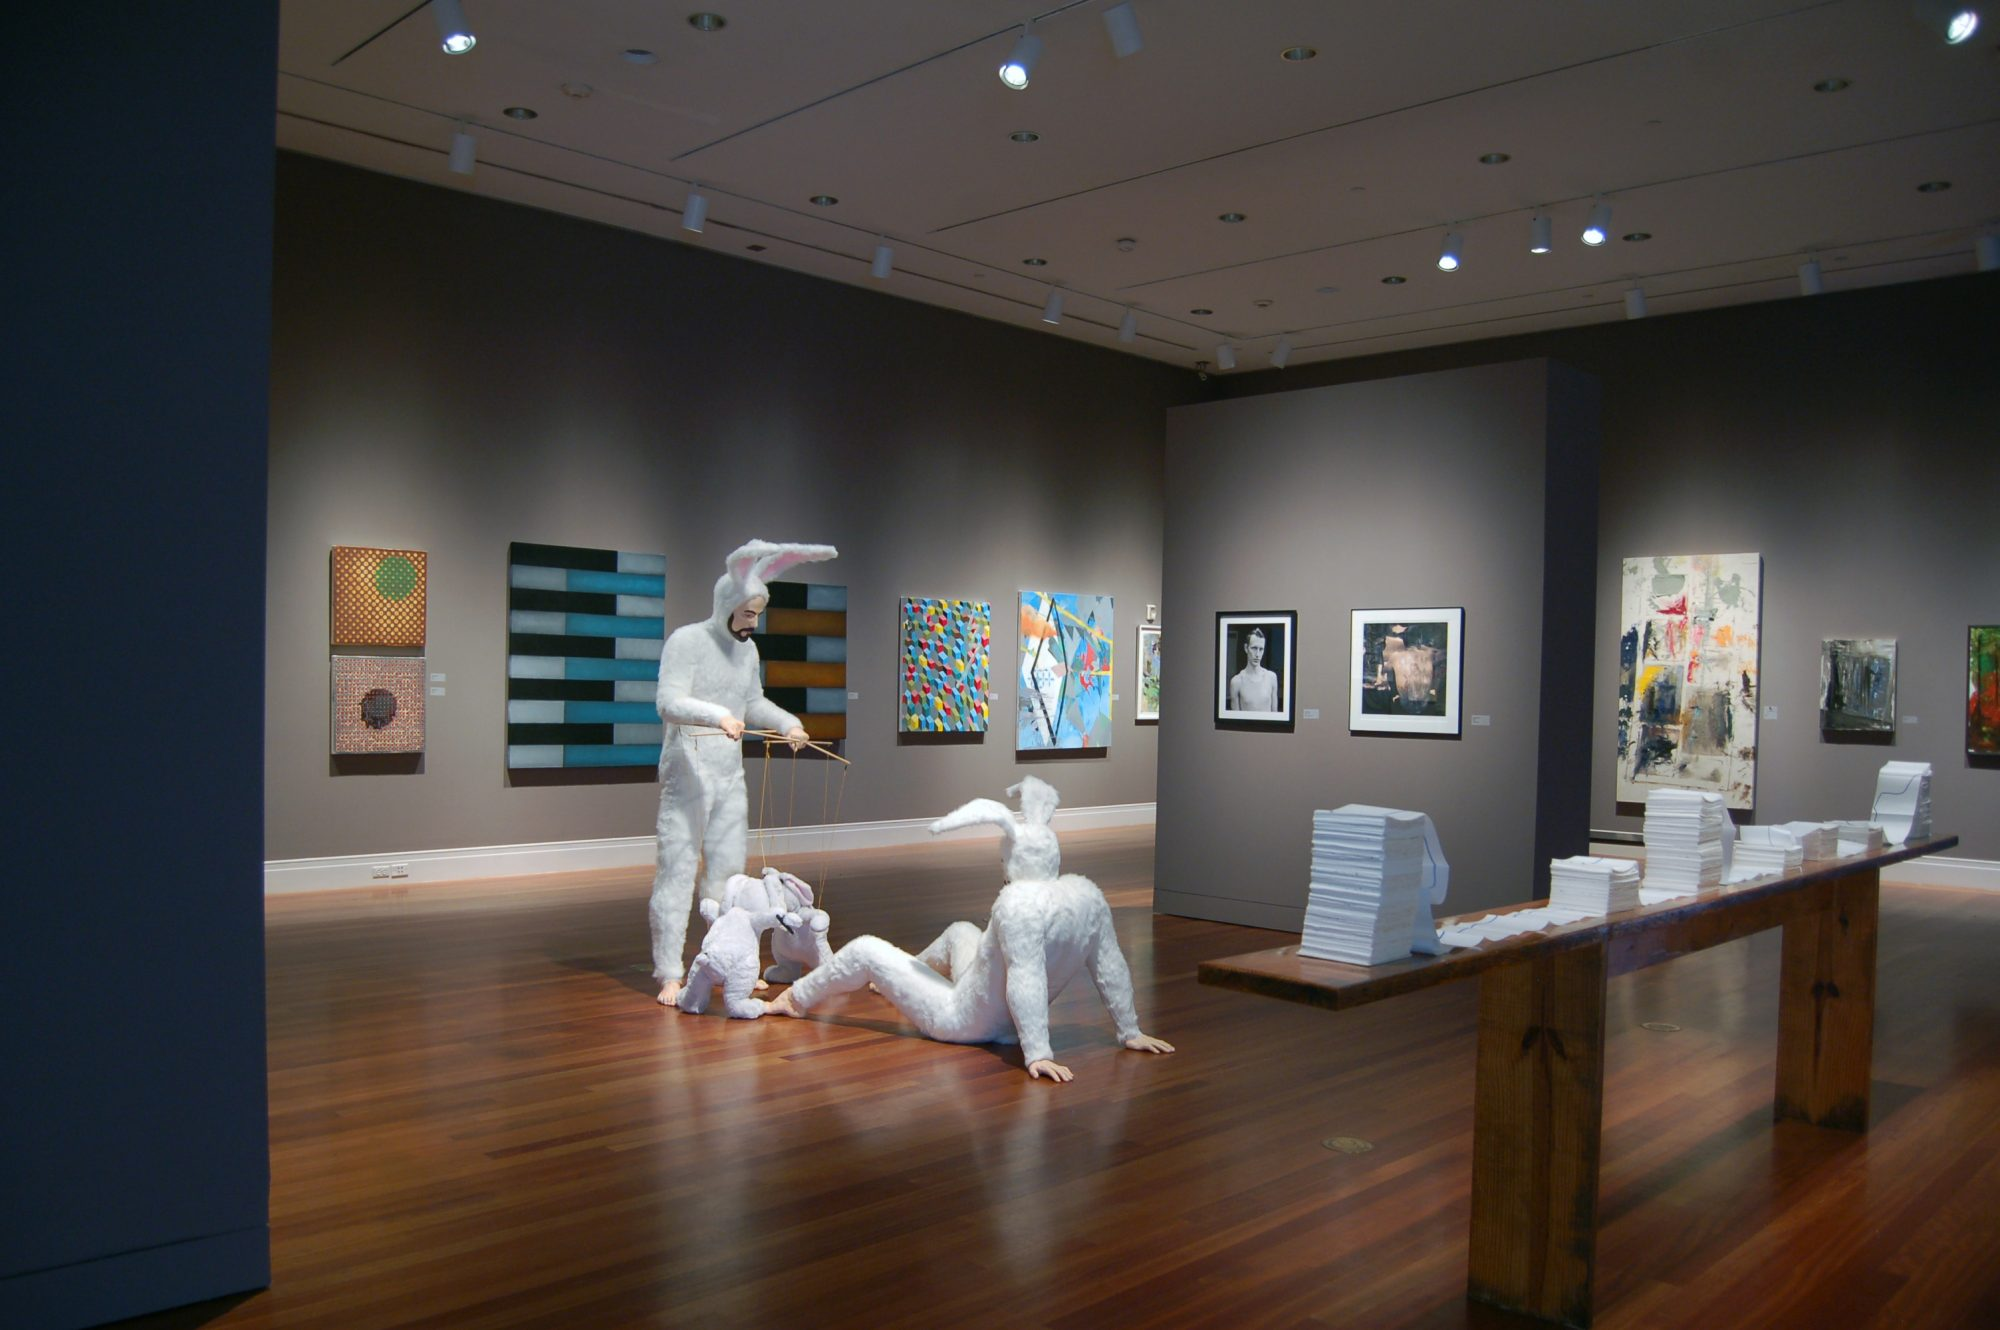 Ogden Museum of Southern Art (New Orleans, Louisiana)